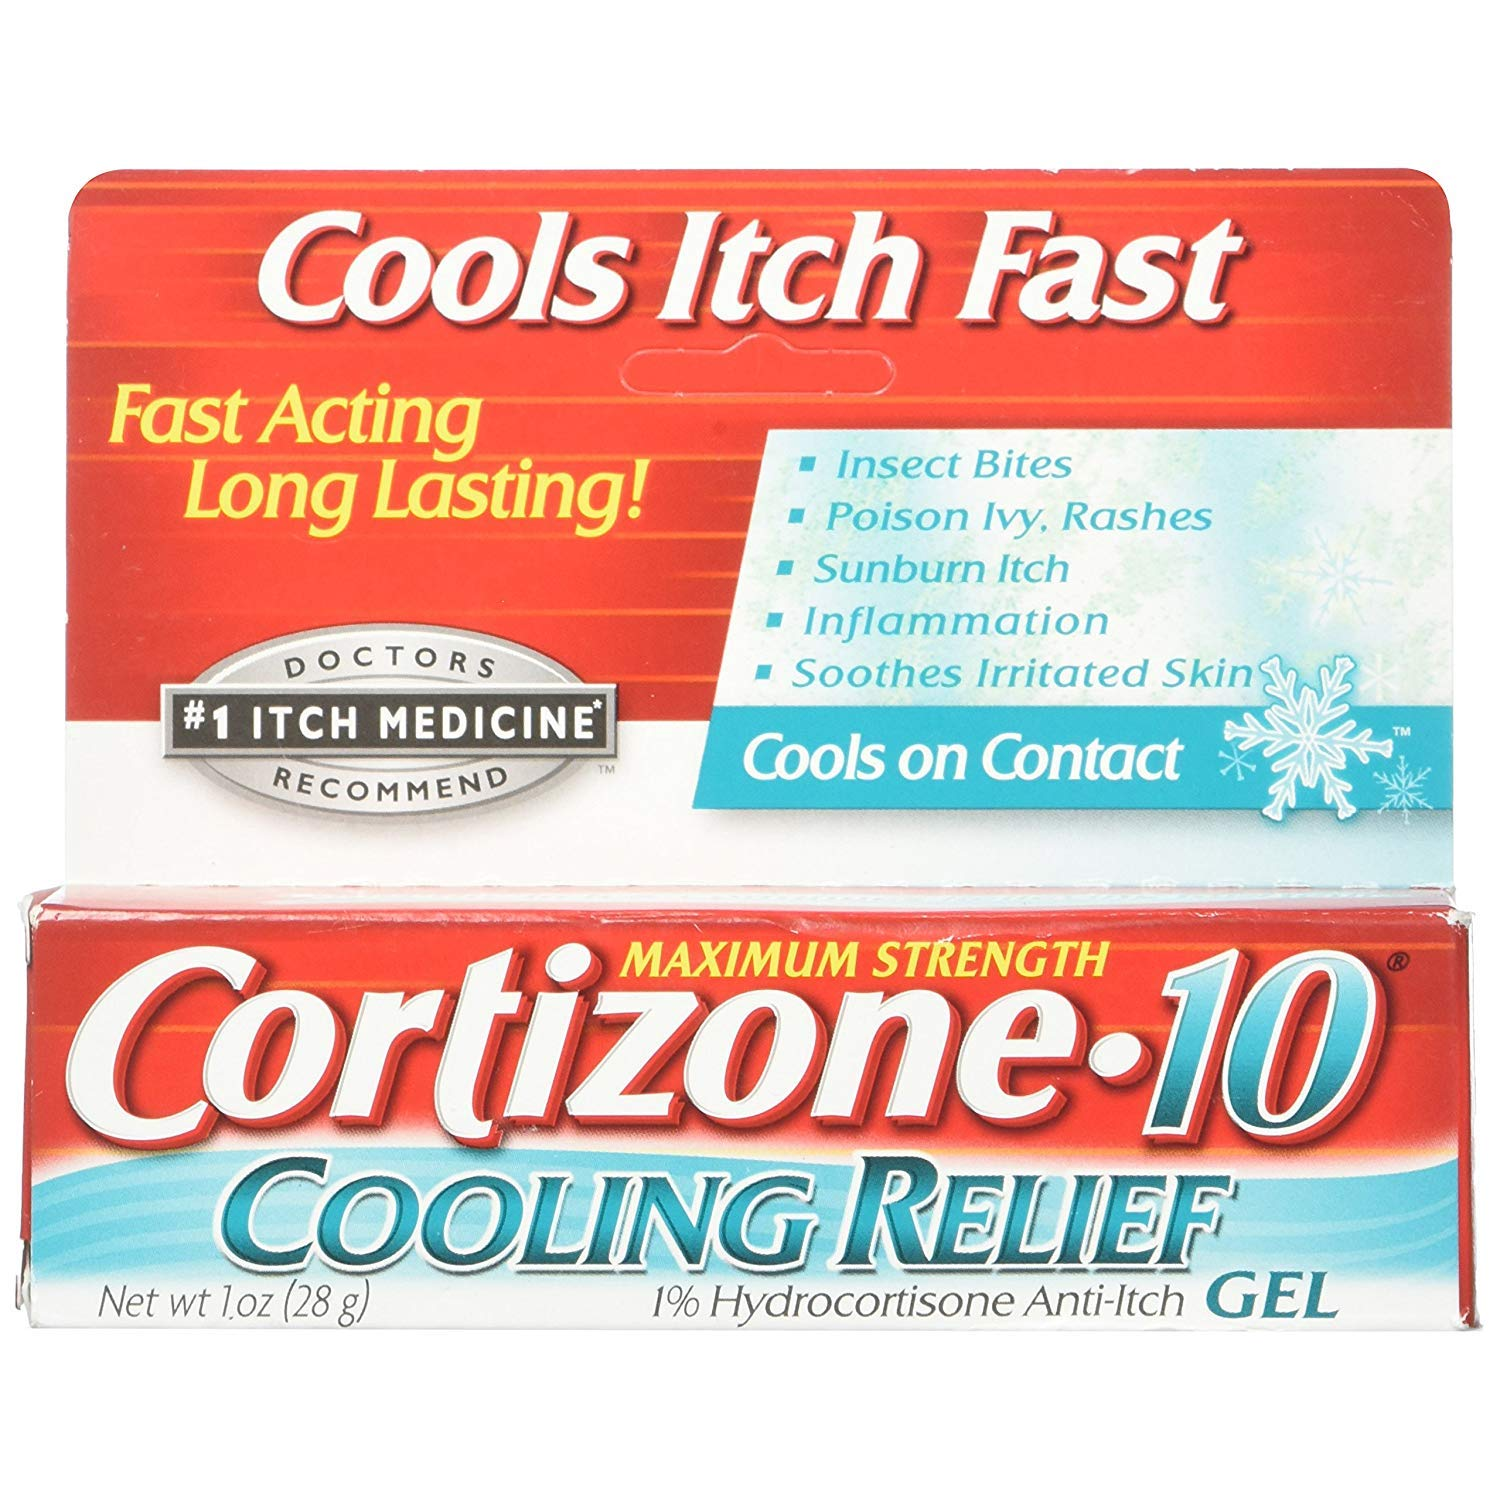 Cortizone-10 Cooling Relief Anti-Itch Gel 1 oz (Pack of 7)